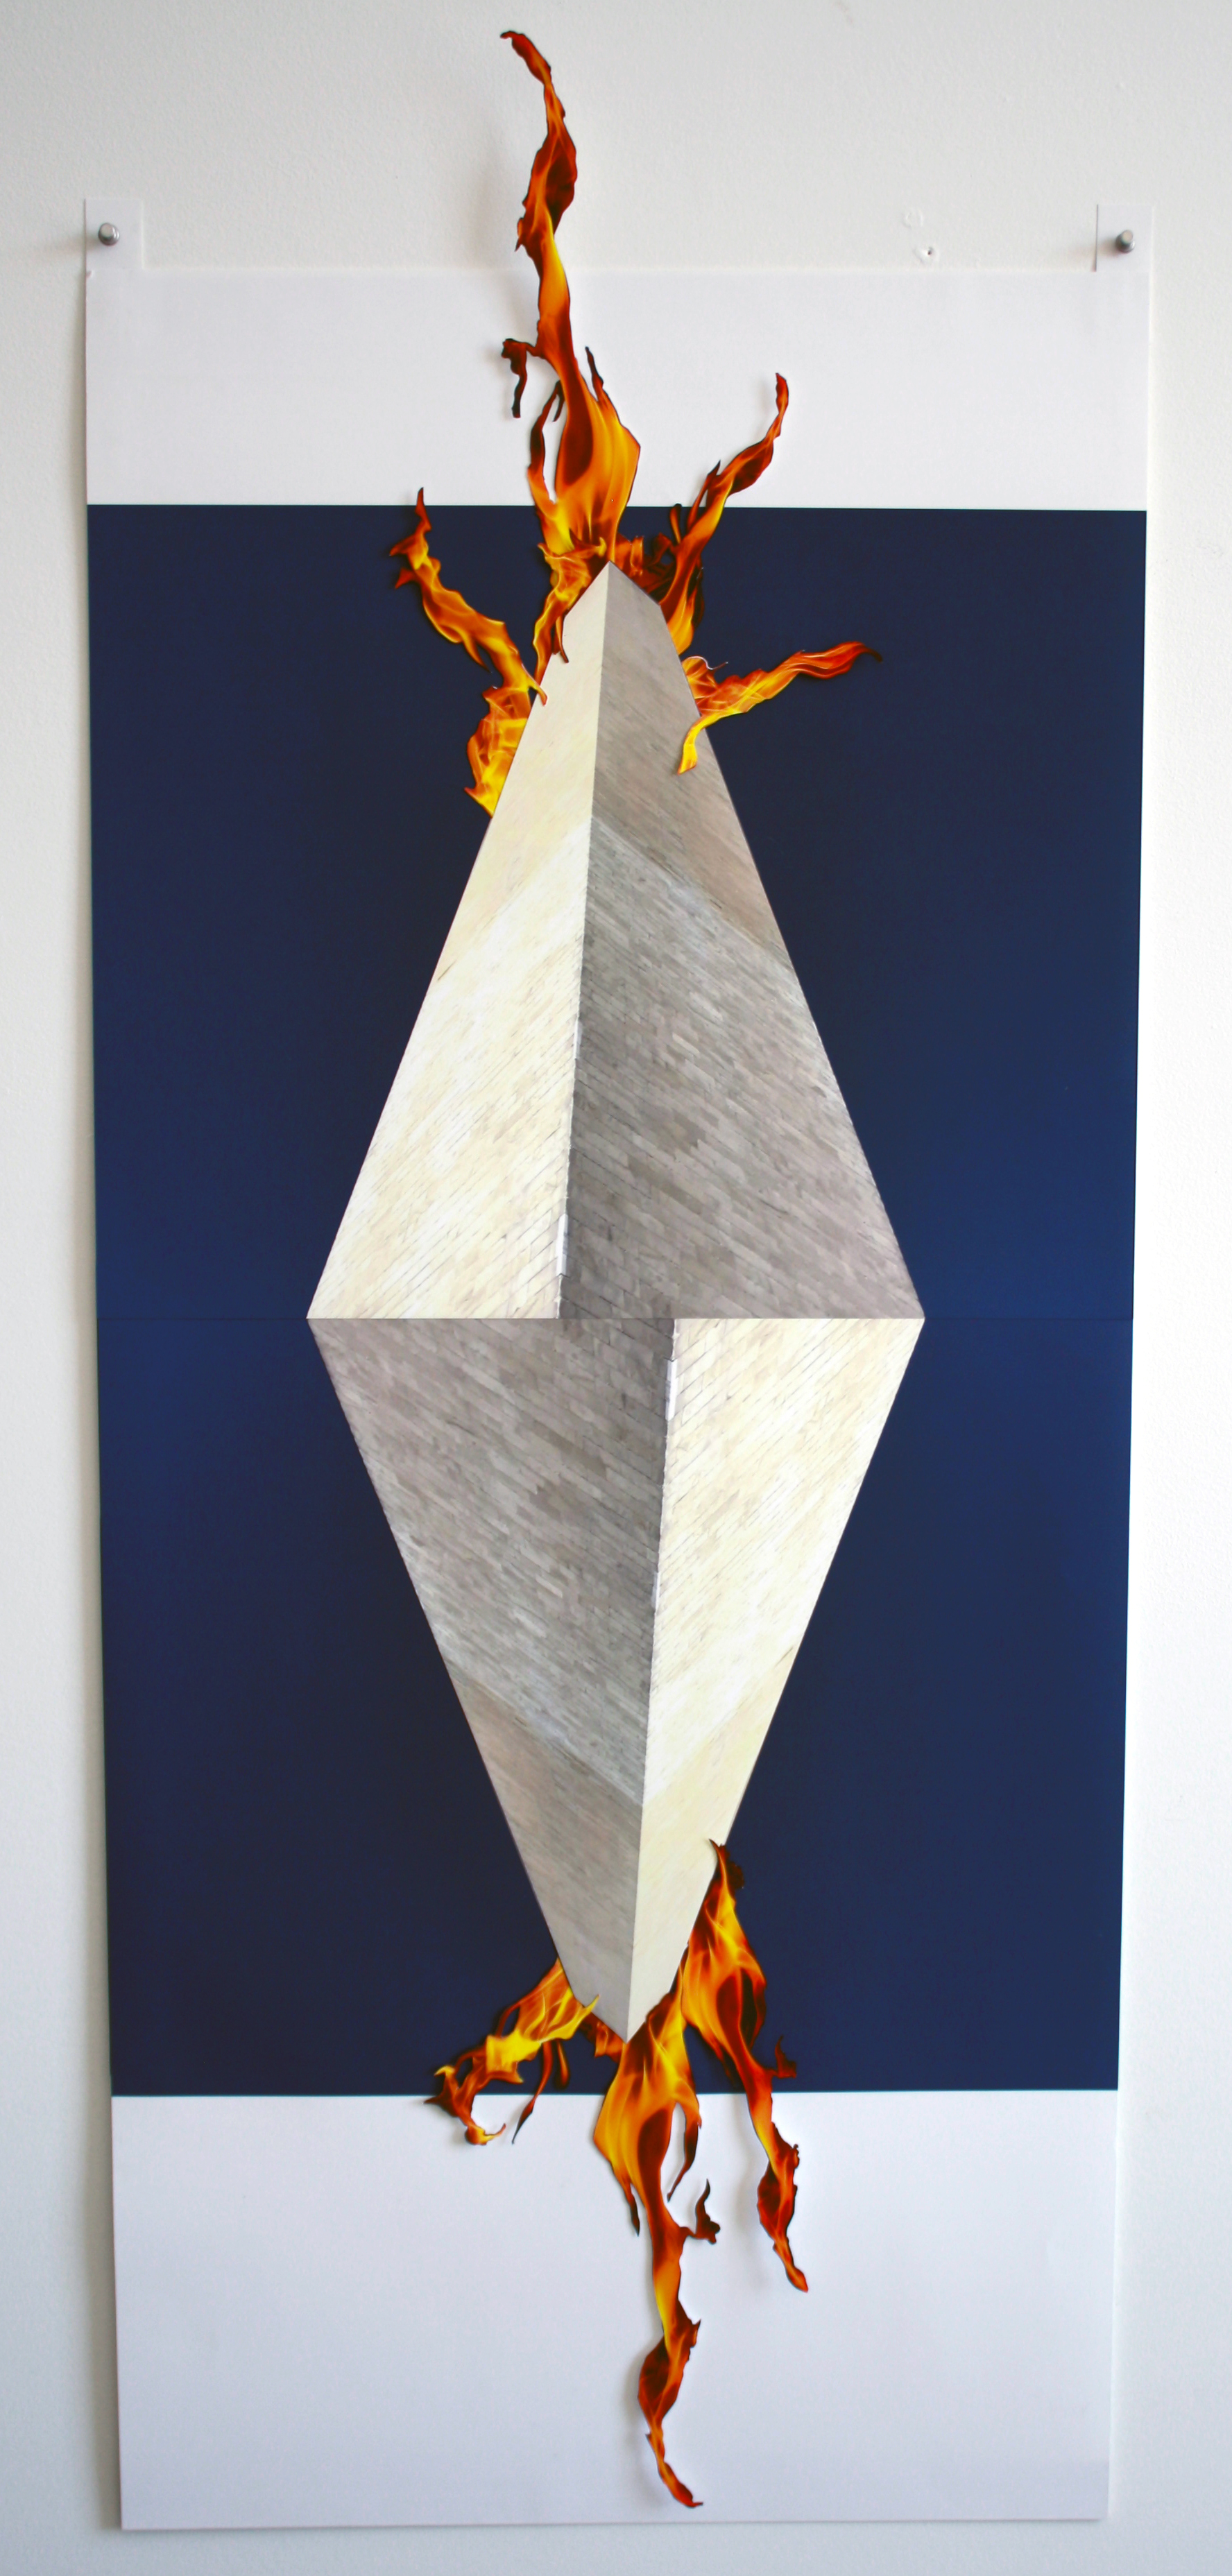 Monument on Fire (Double Diamond)